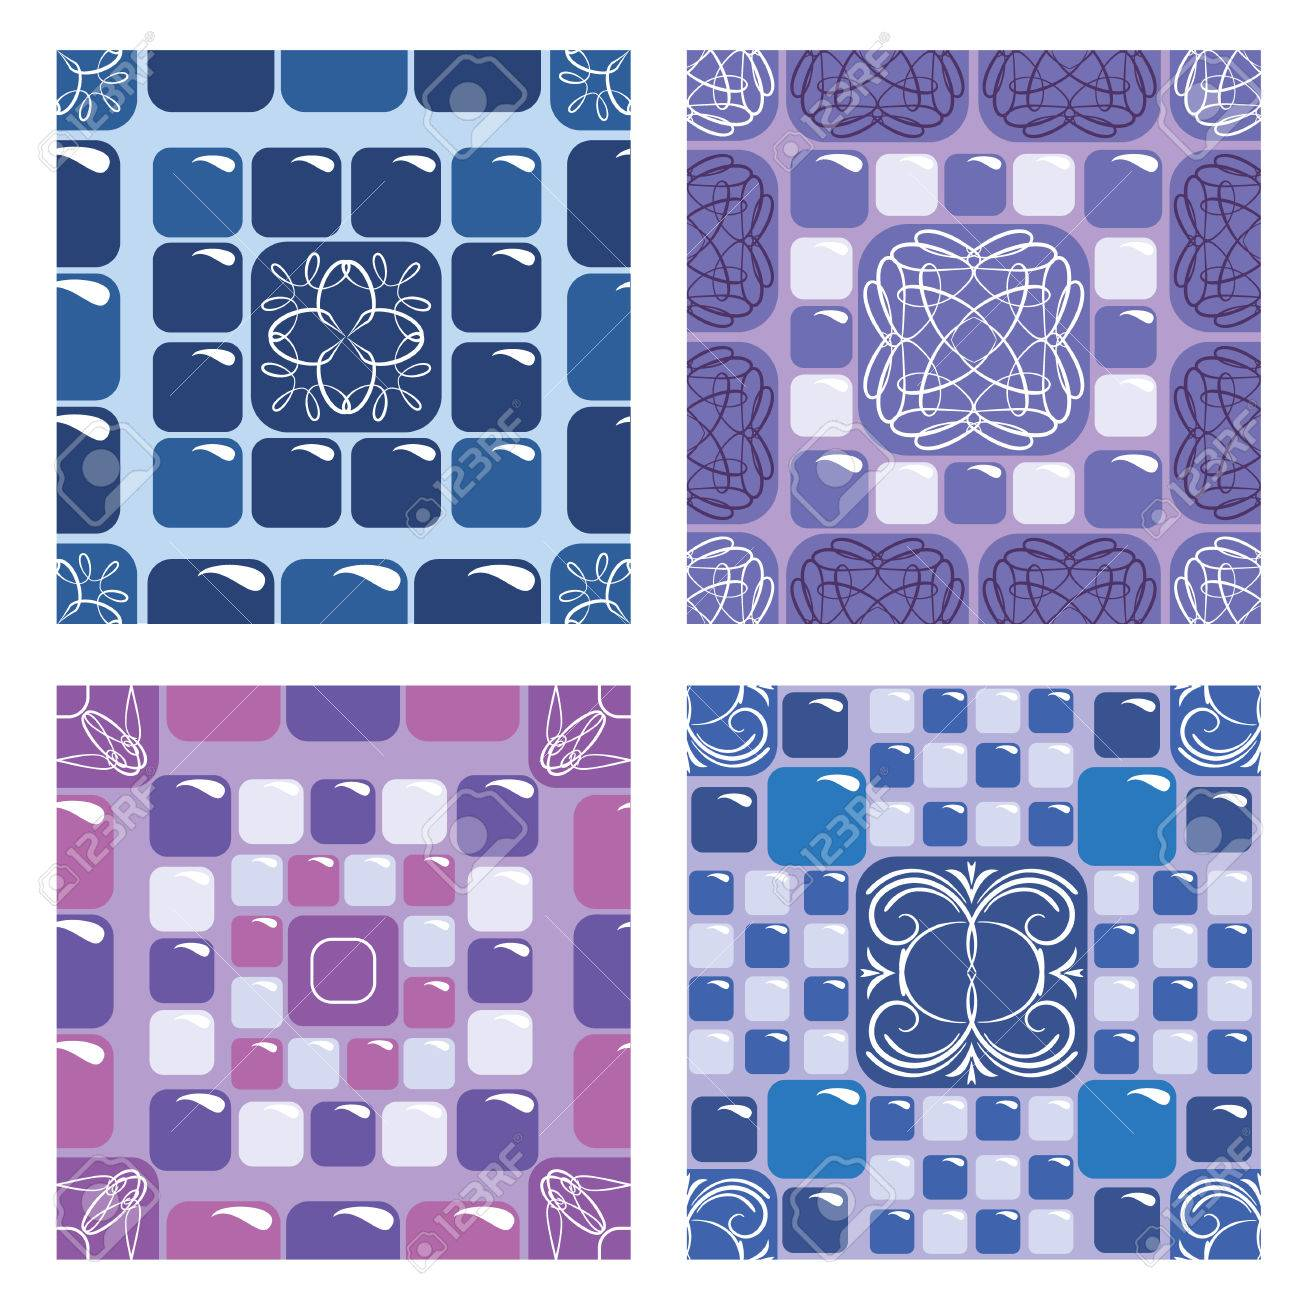 Set of seamless mosaic patterns blue and purple ceramic tiles set of seamless mosaic patterns blue and purple ceramic tiles classical geometric ornament dailygadgetfo Images